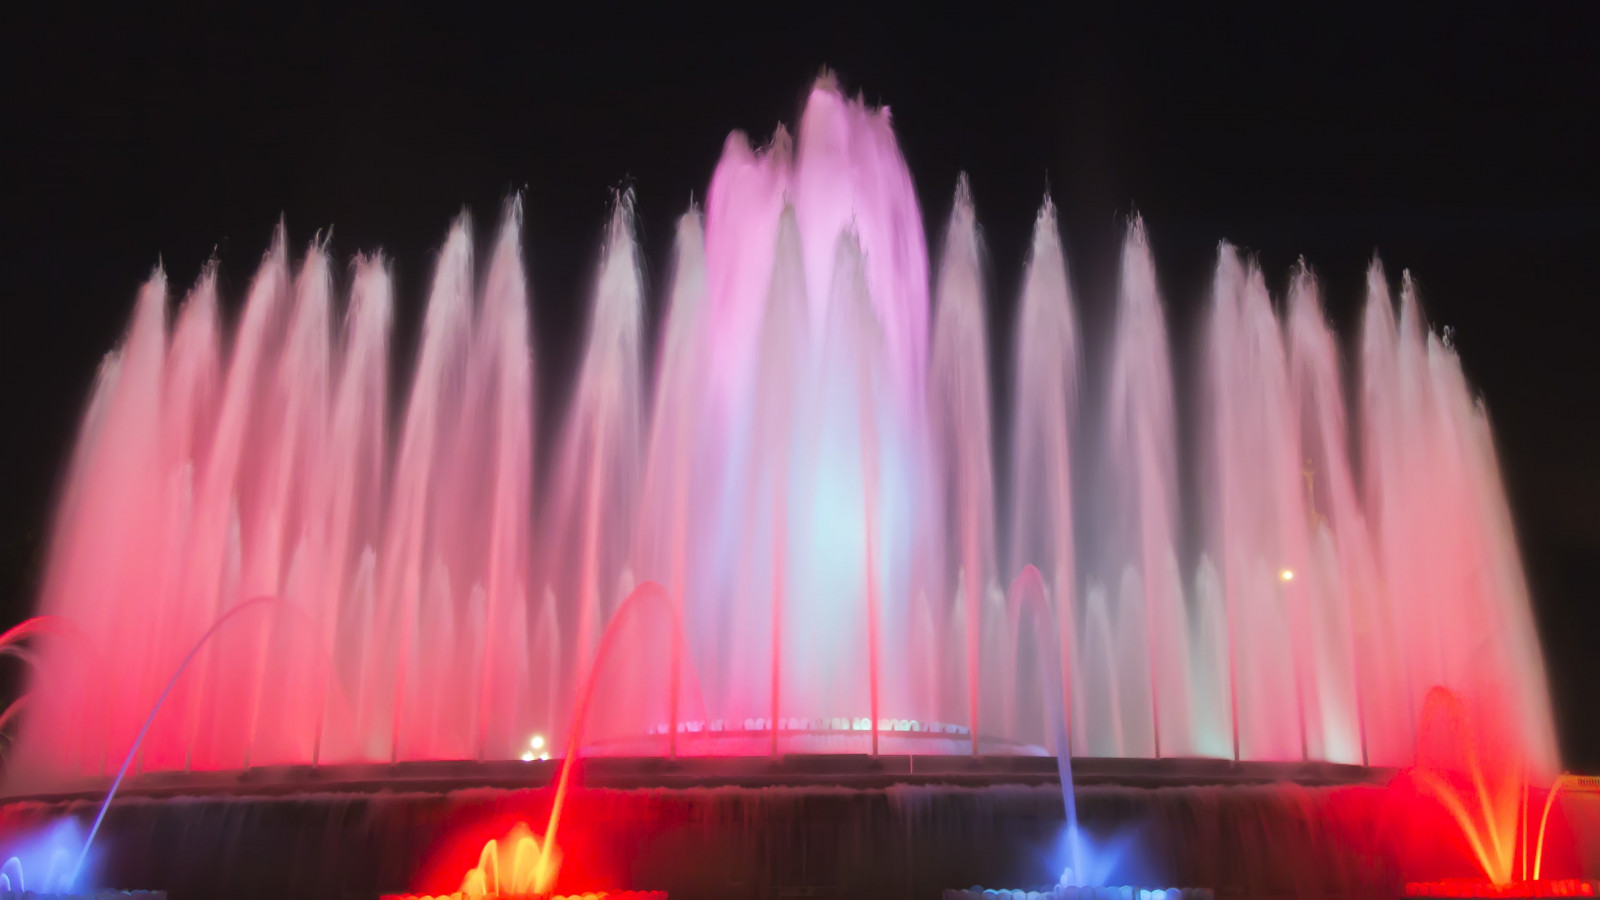 Fountains in Barcelona wallpaper 1600x900